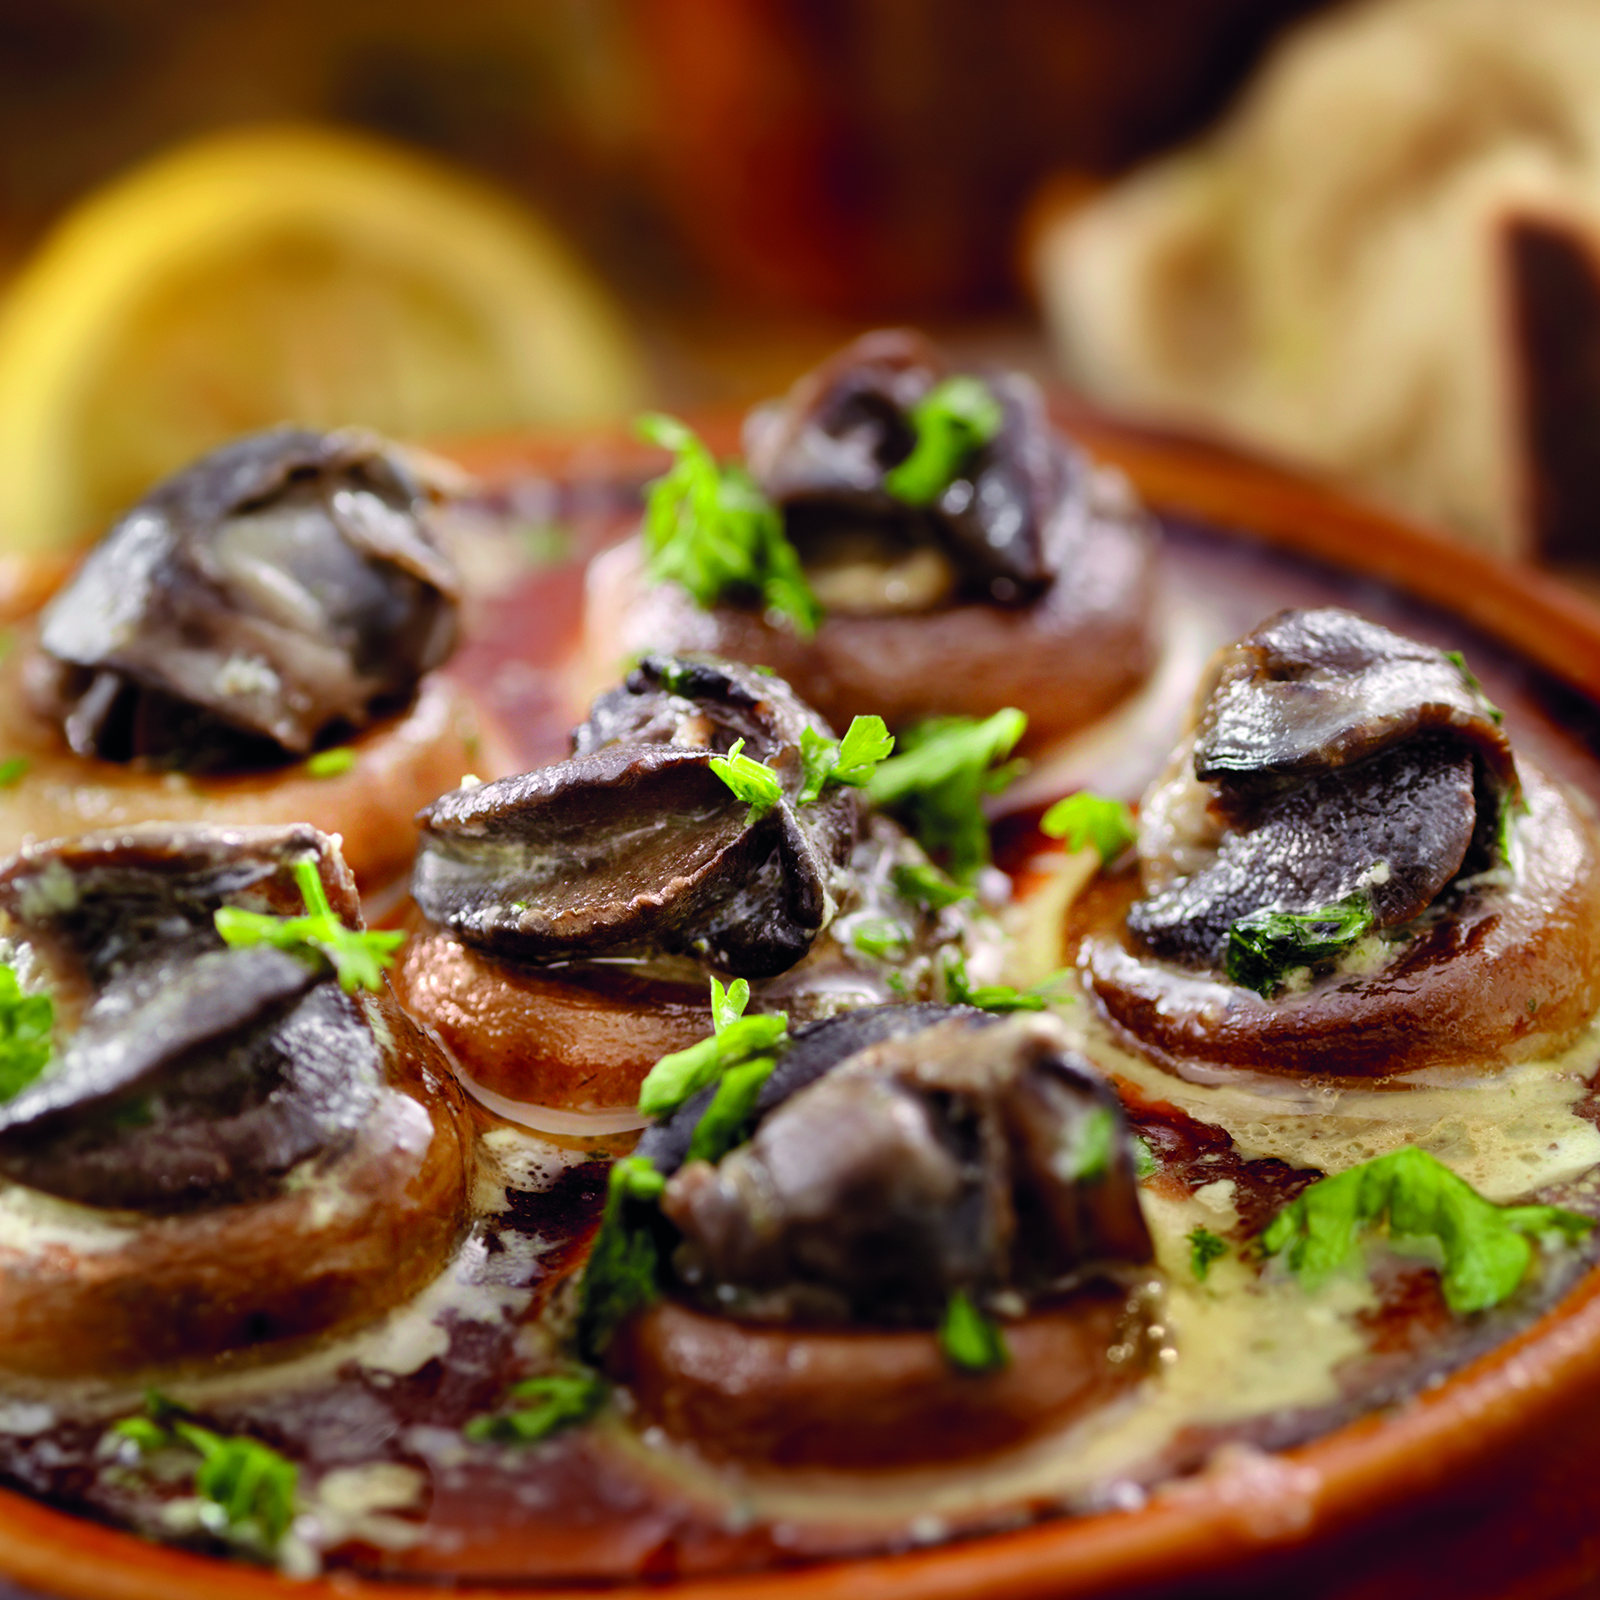 Escargot in Mushroom Caps with a Herb Butter, White Wine and Garlic Sauce with Fresh Parsle and Crusty French Bread -Photographed on Hasselblad H3D2-39mb Camera